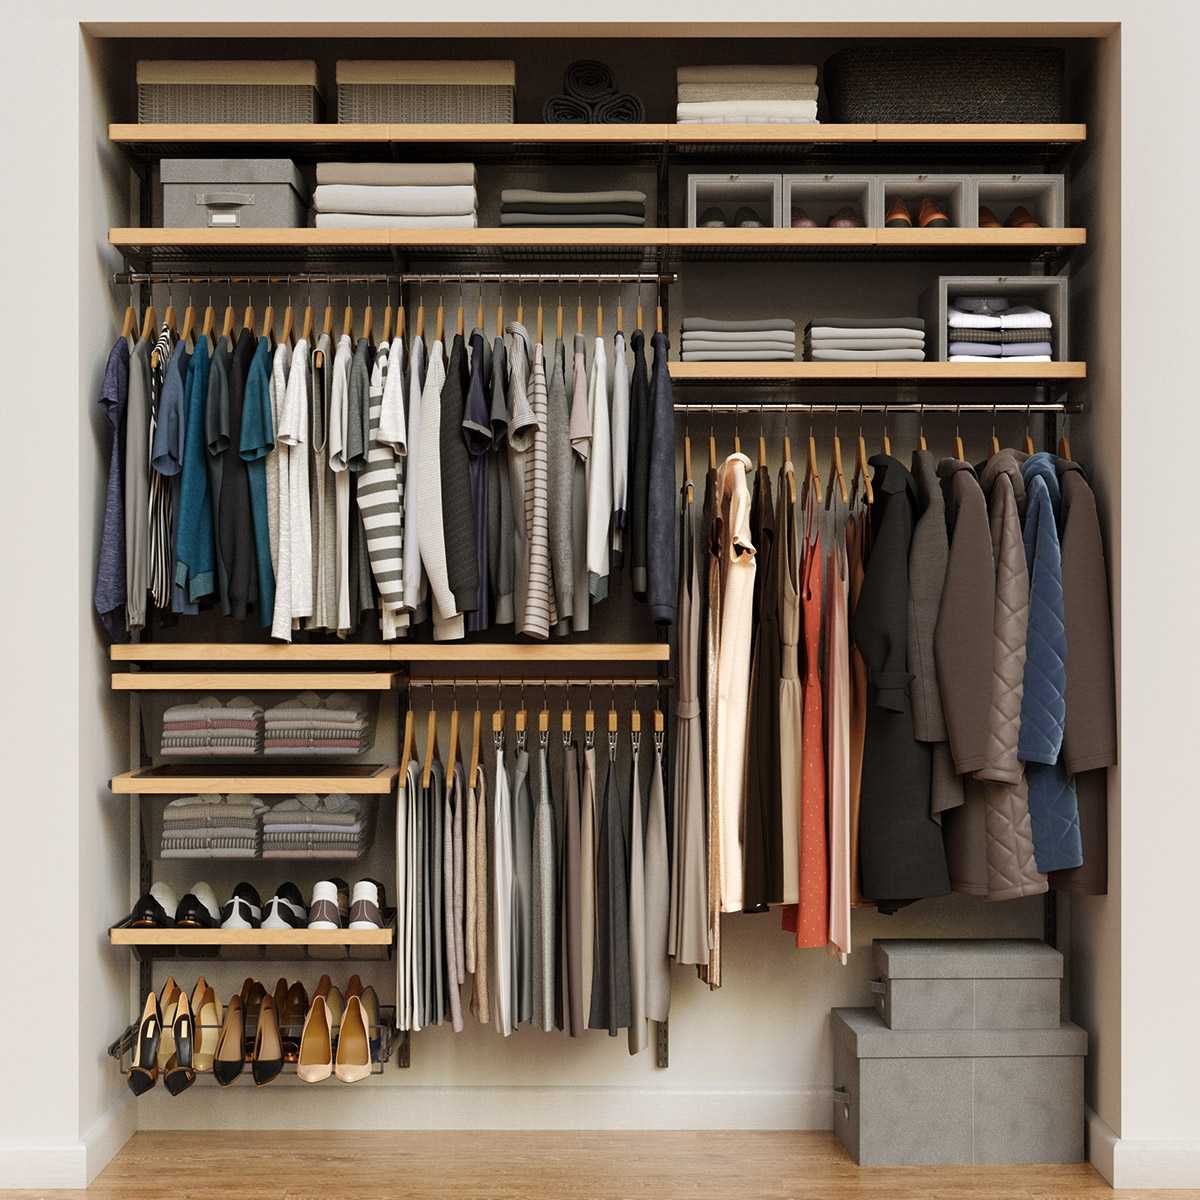 Elfa Décor 7' Graphite & Birch Reach-In Closet